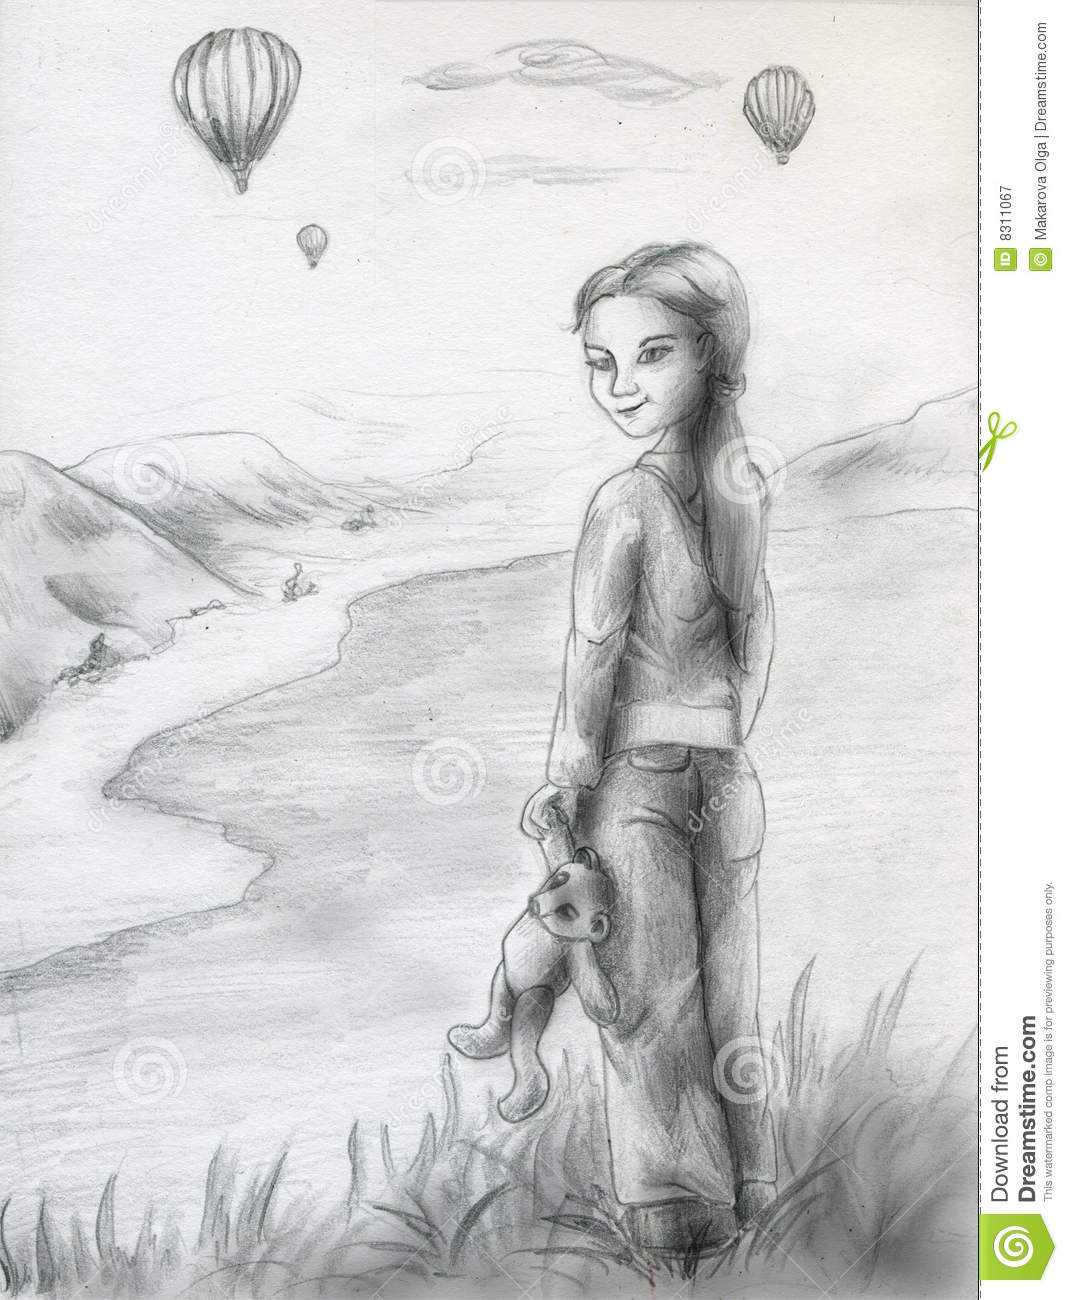 Watching For Balloons Sketch Stock Illustration Illustration Of